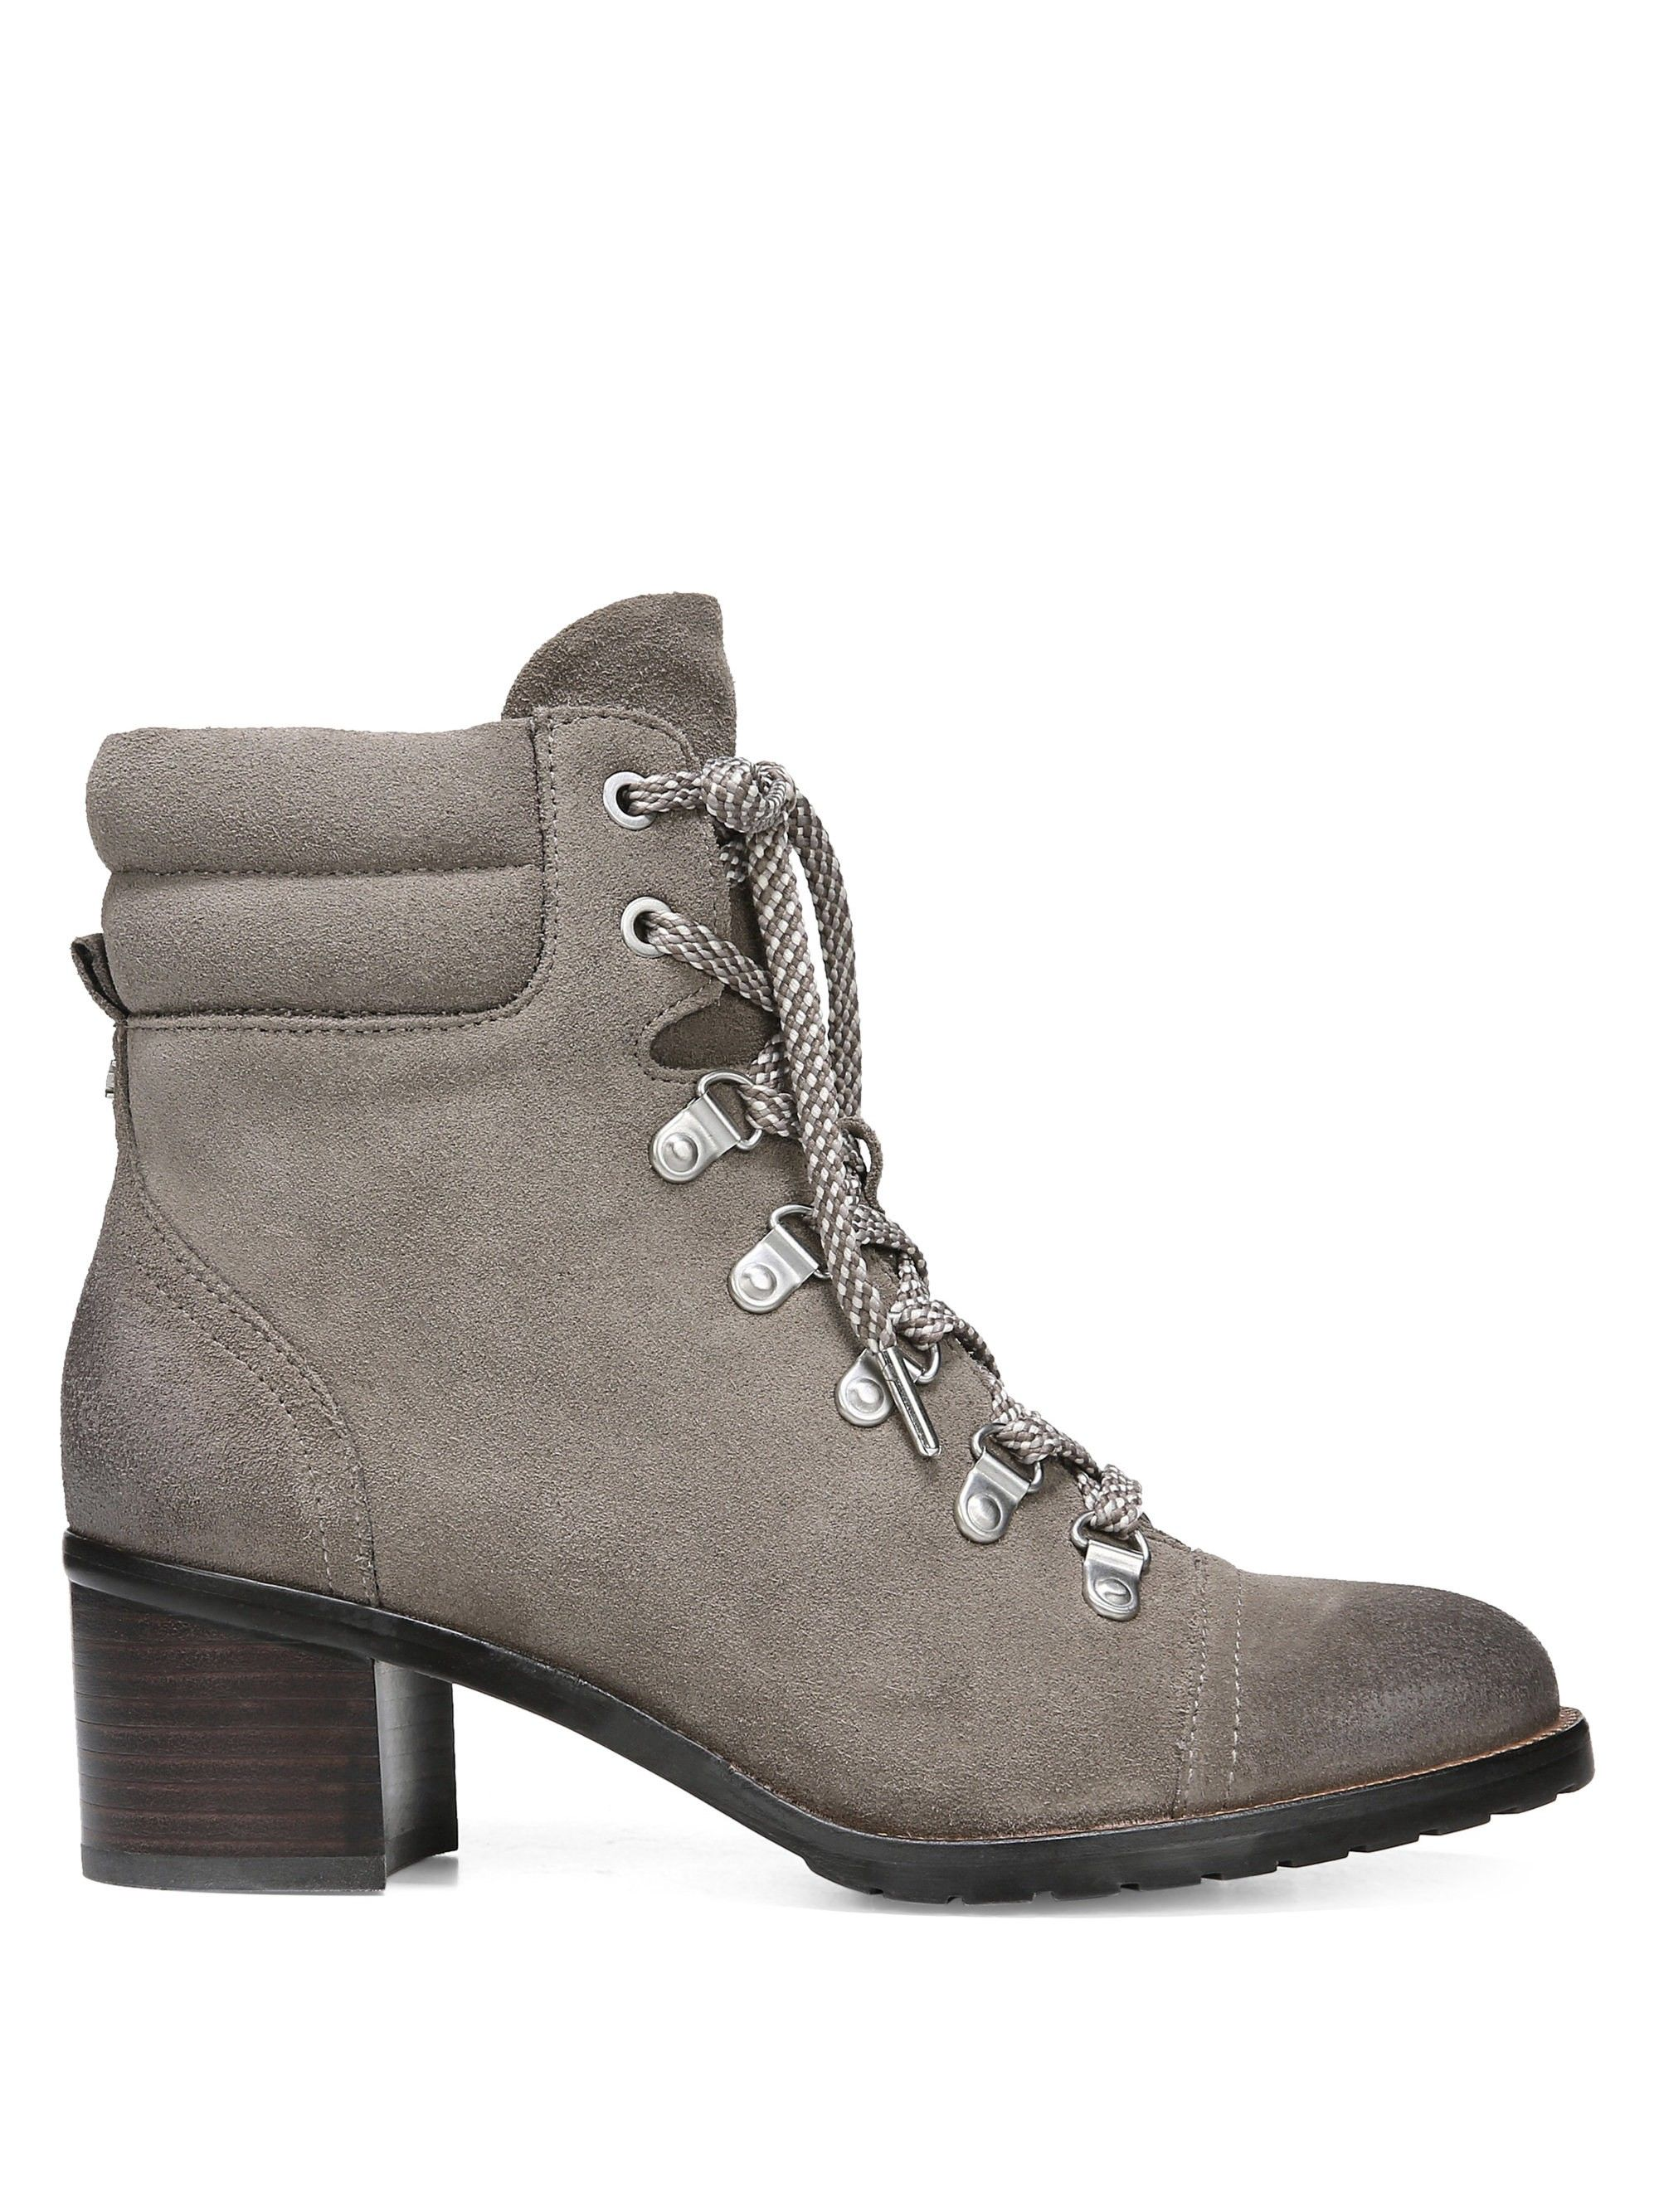 d65feca71033dd Manchester Faux Fur Suede Lace-Up Boots by Sam Edelman in 2018 ...